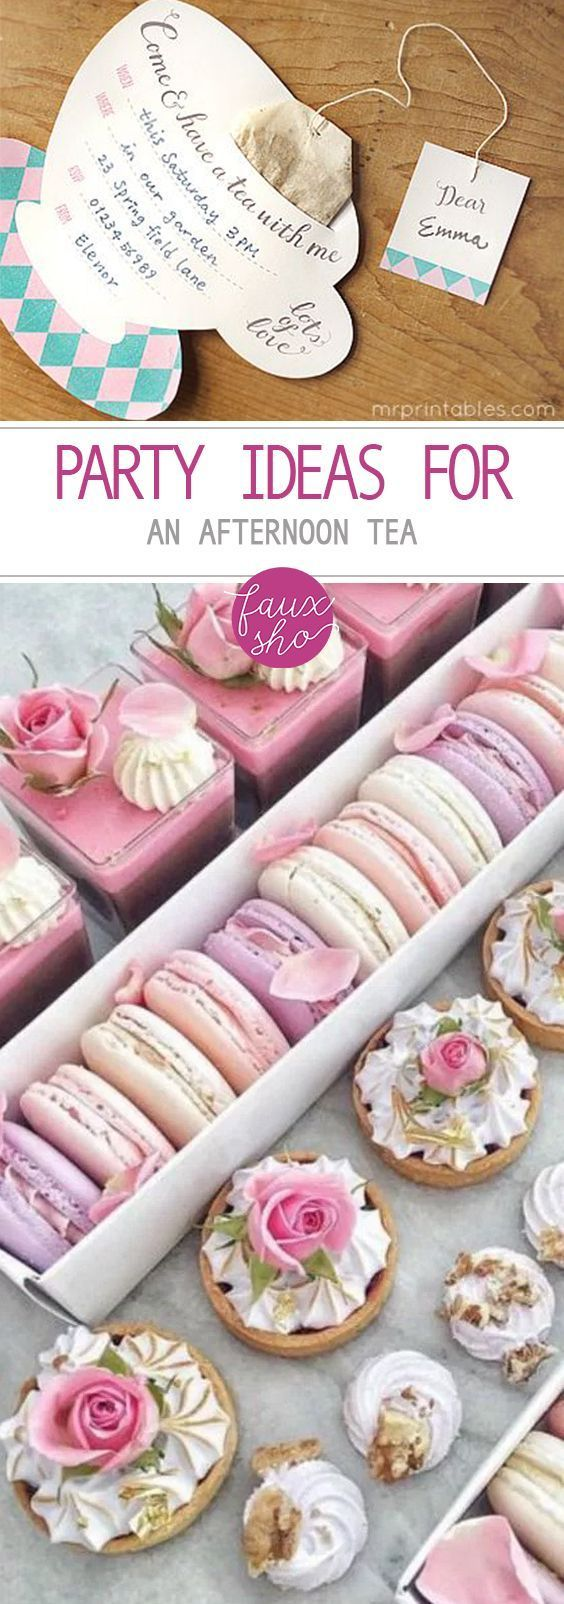 Party Ideas for an Afternoon Tea - | Party DIY | Pinterest | High ...